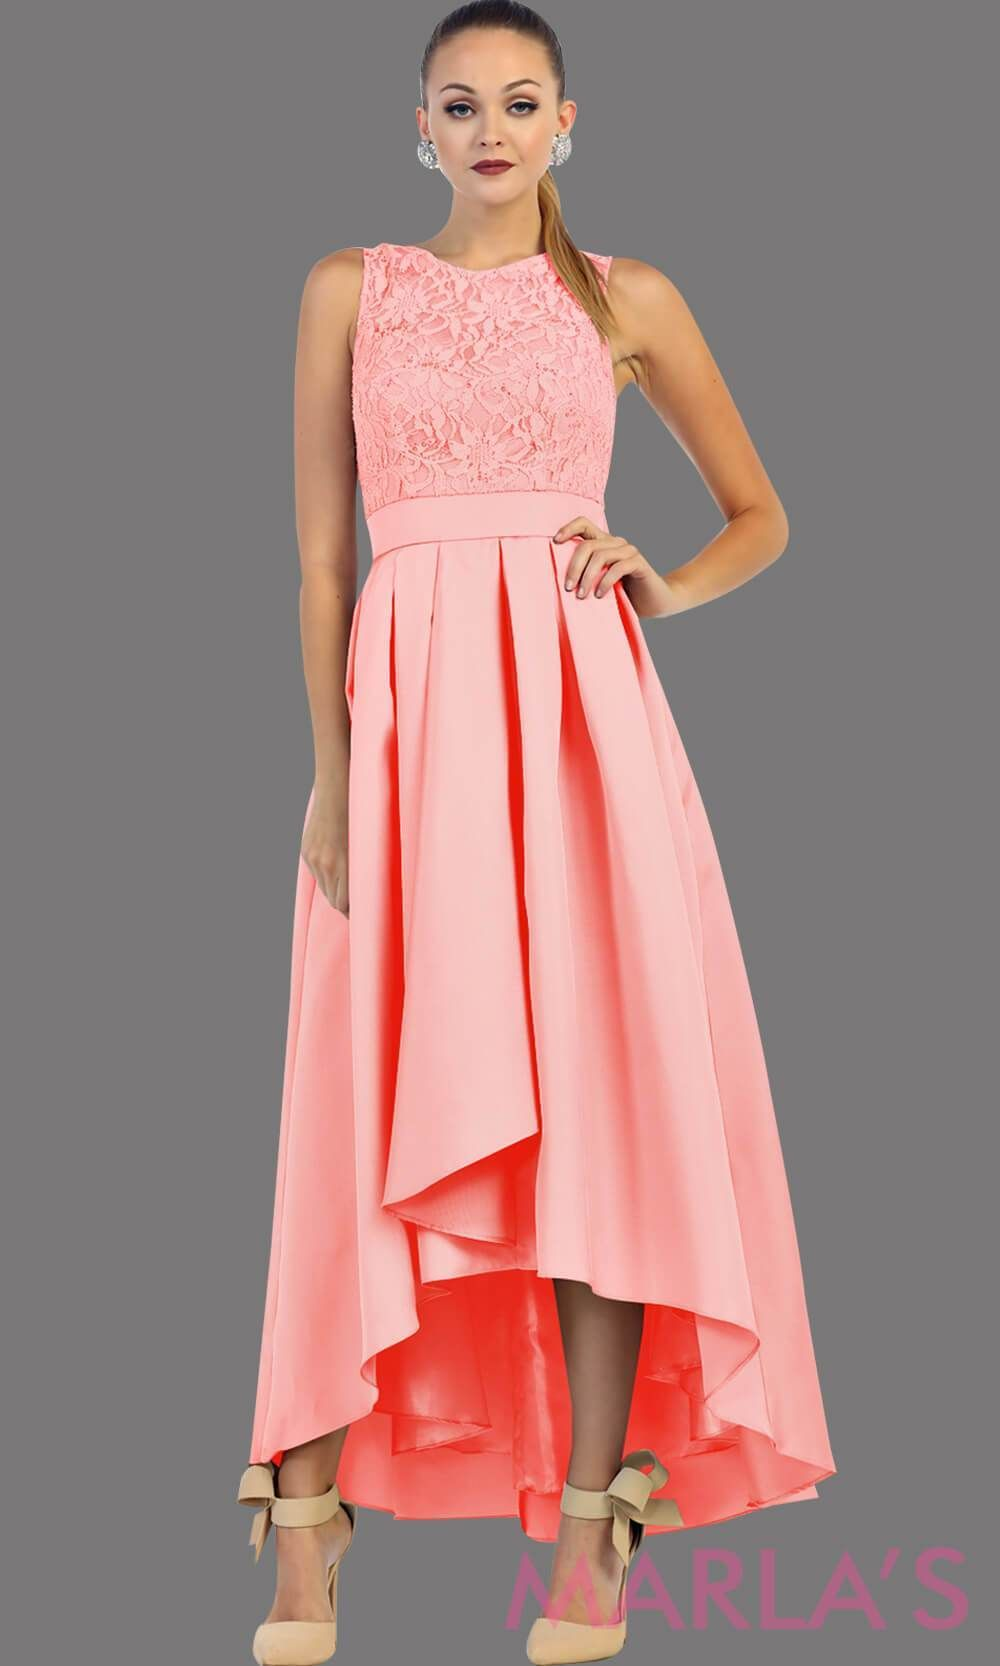 915364a0332 High low pink dress with lace bodice and satin skirt. This is a perfect  pink party dress for attending a wedding as a guest